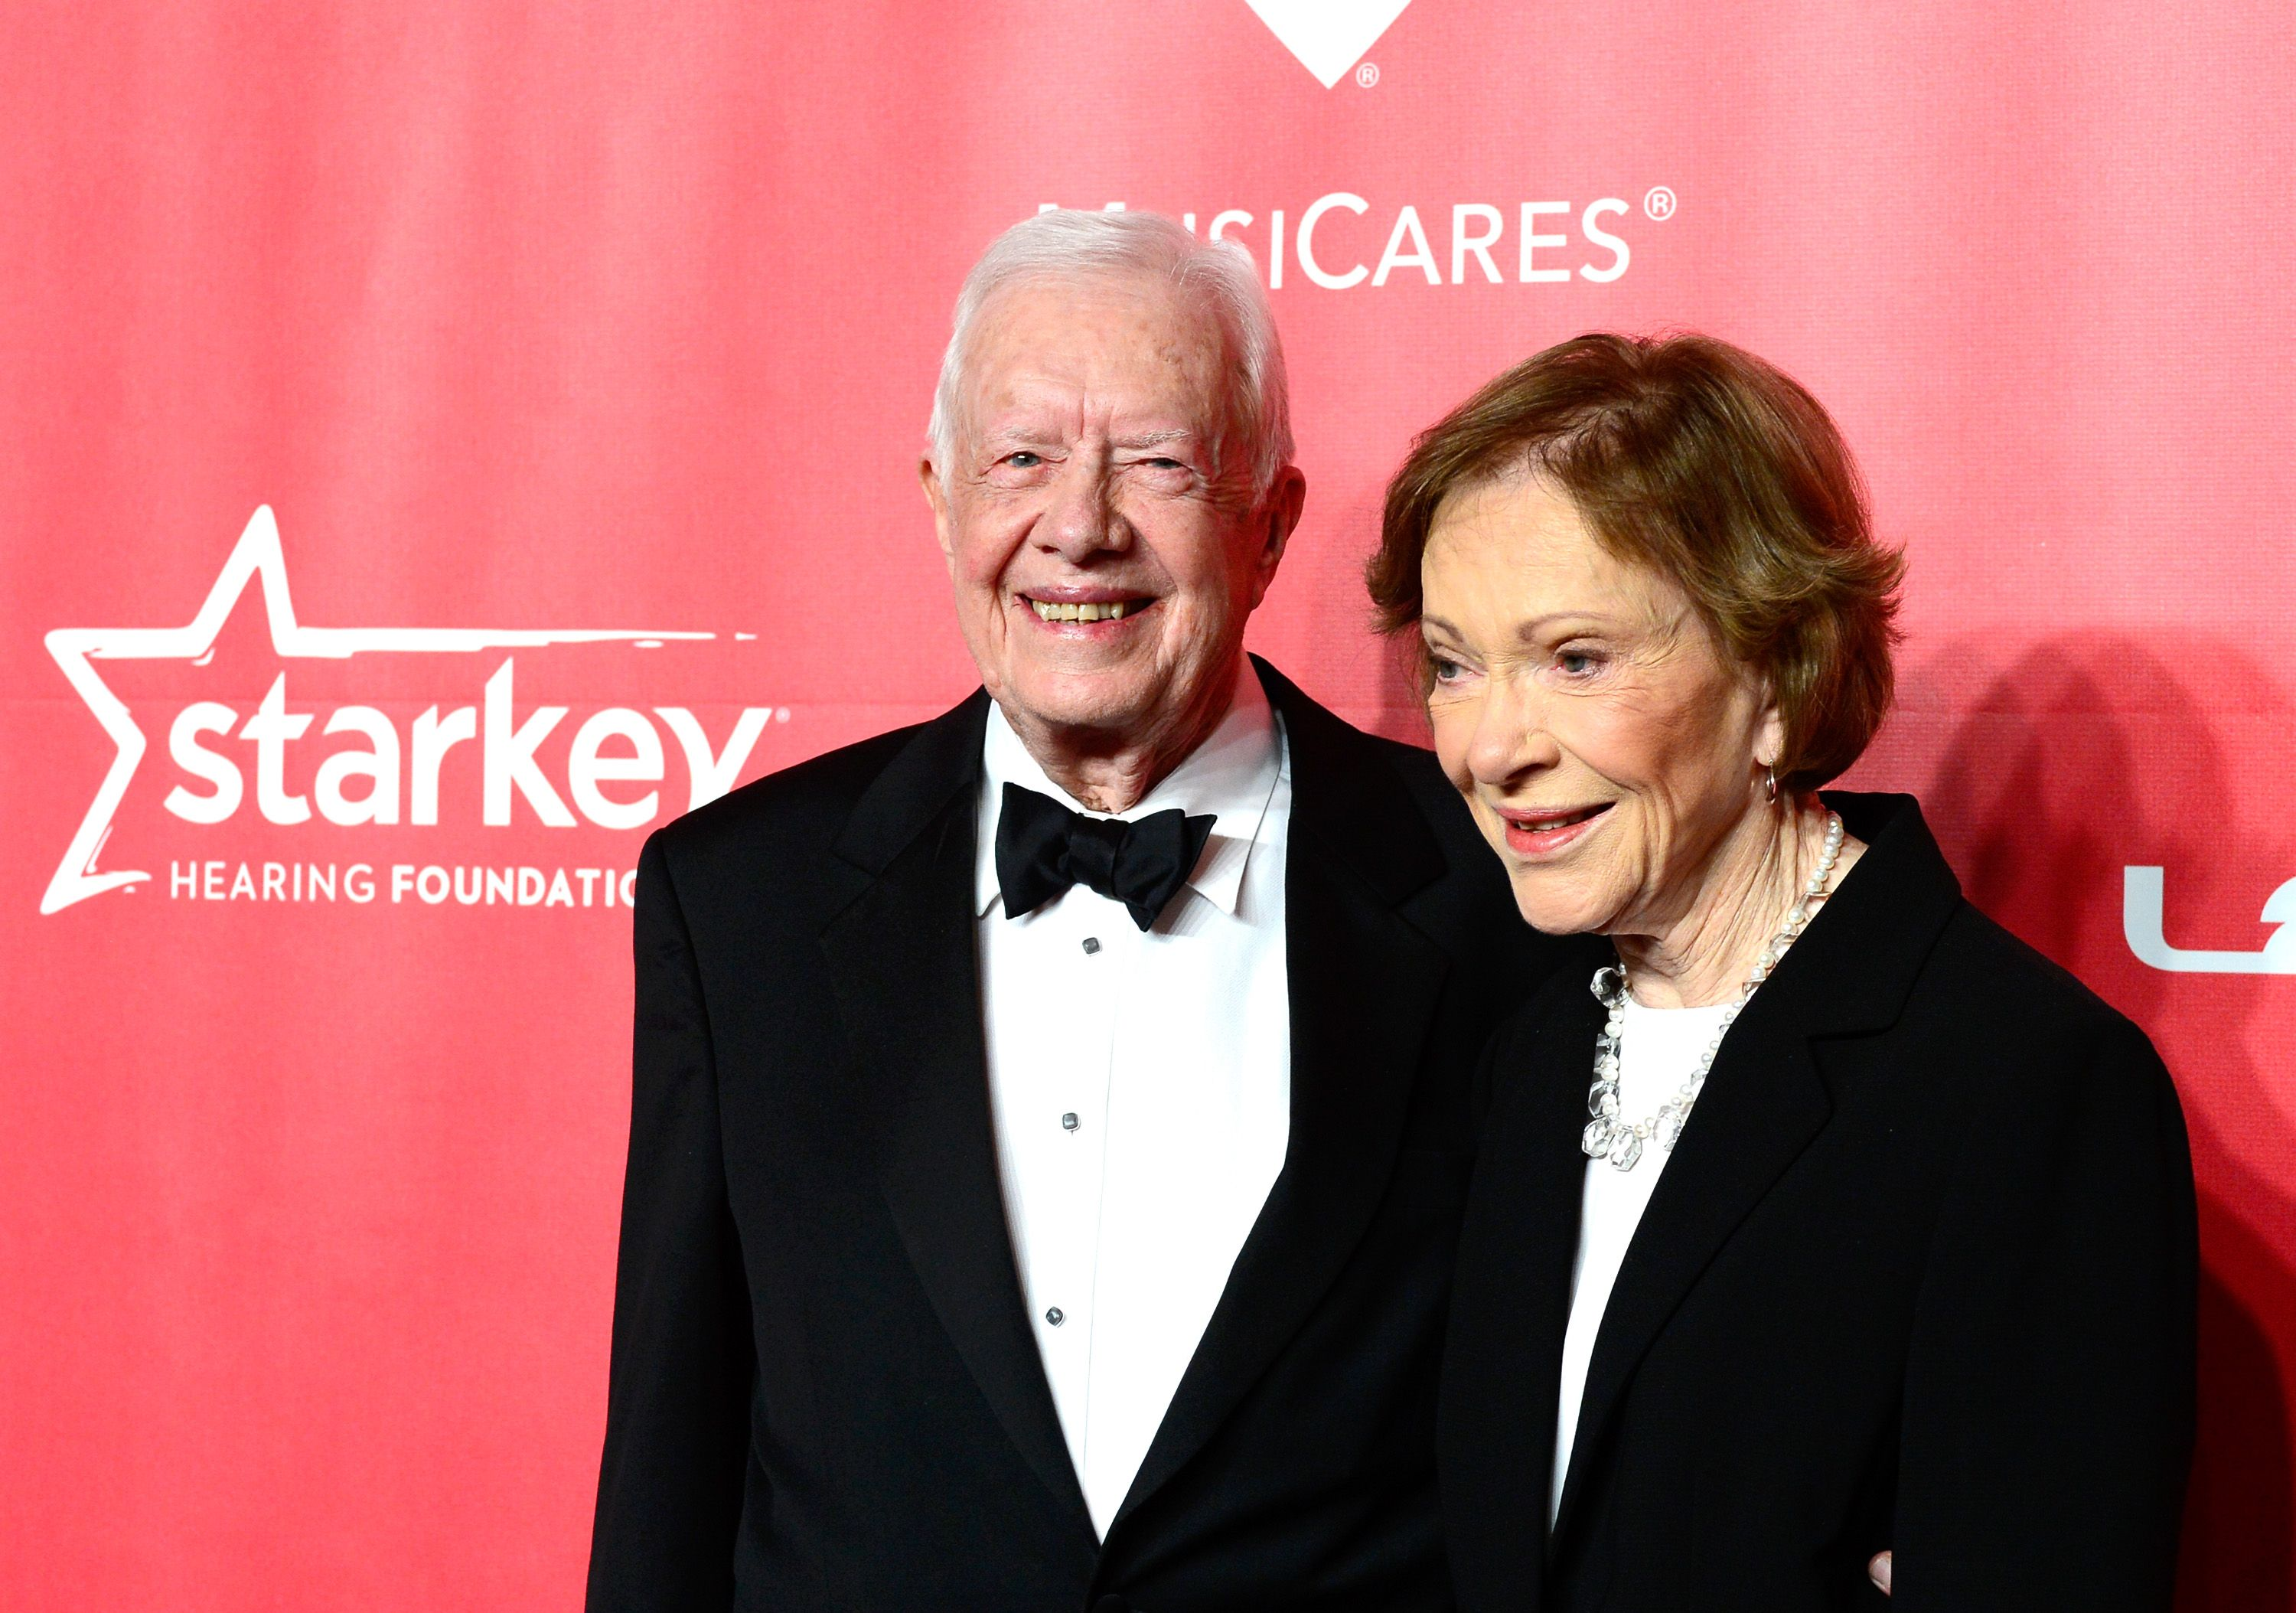 Former U.S. President Jimmy Carter and former First Lady Rosalynn Carter at the 25th anniversary MusiCares 2015 Person Of The Year Gala on February 6, 2015 | Photo: Getty Images